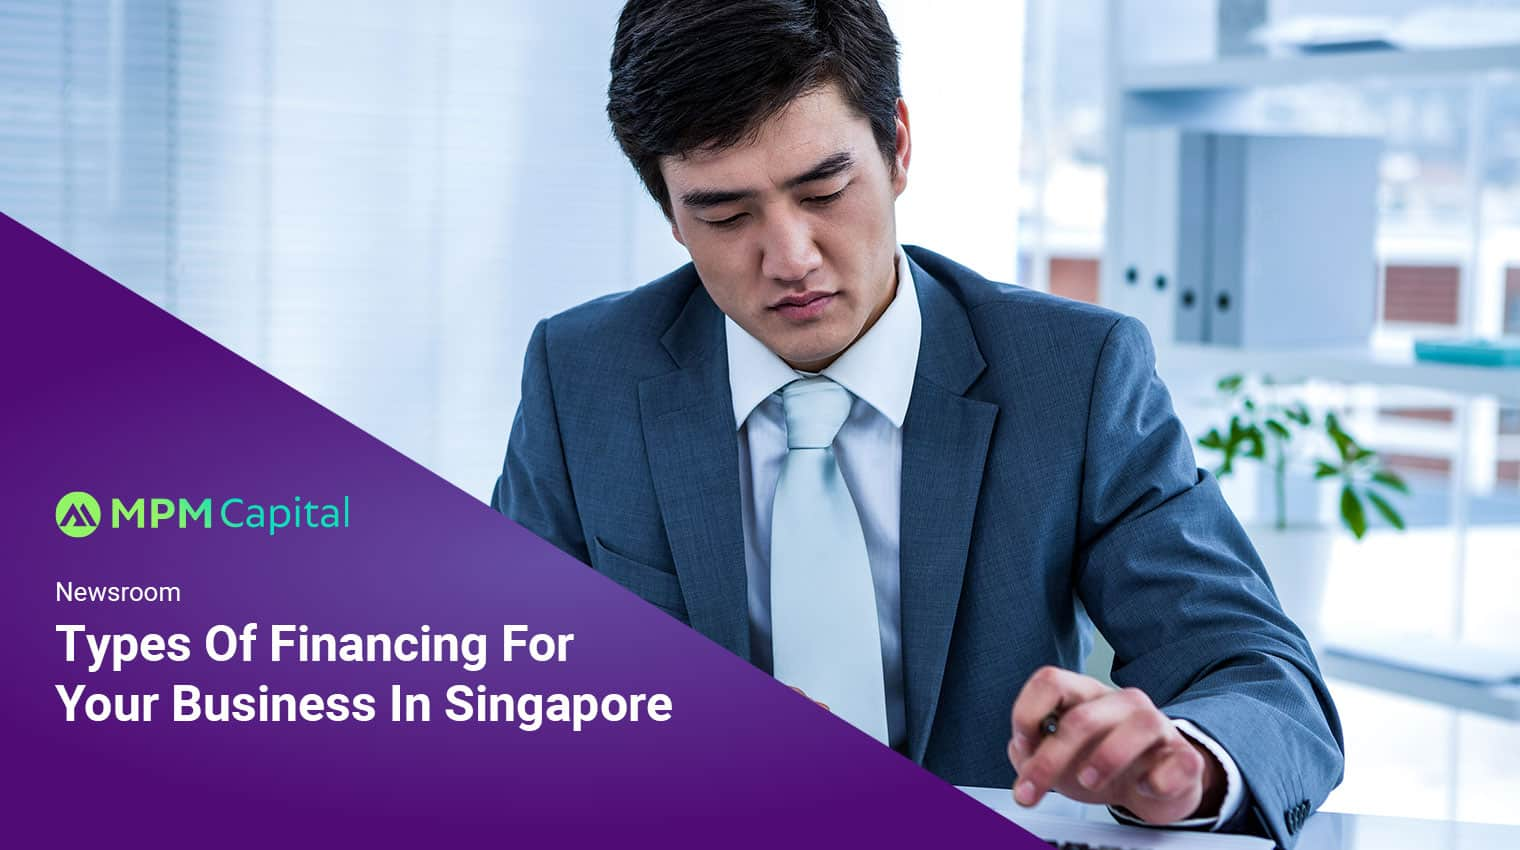 Types-Of-Financing-For-Your-Business-In-Singapore-MPM-Capital